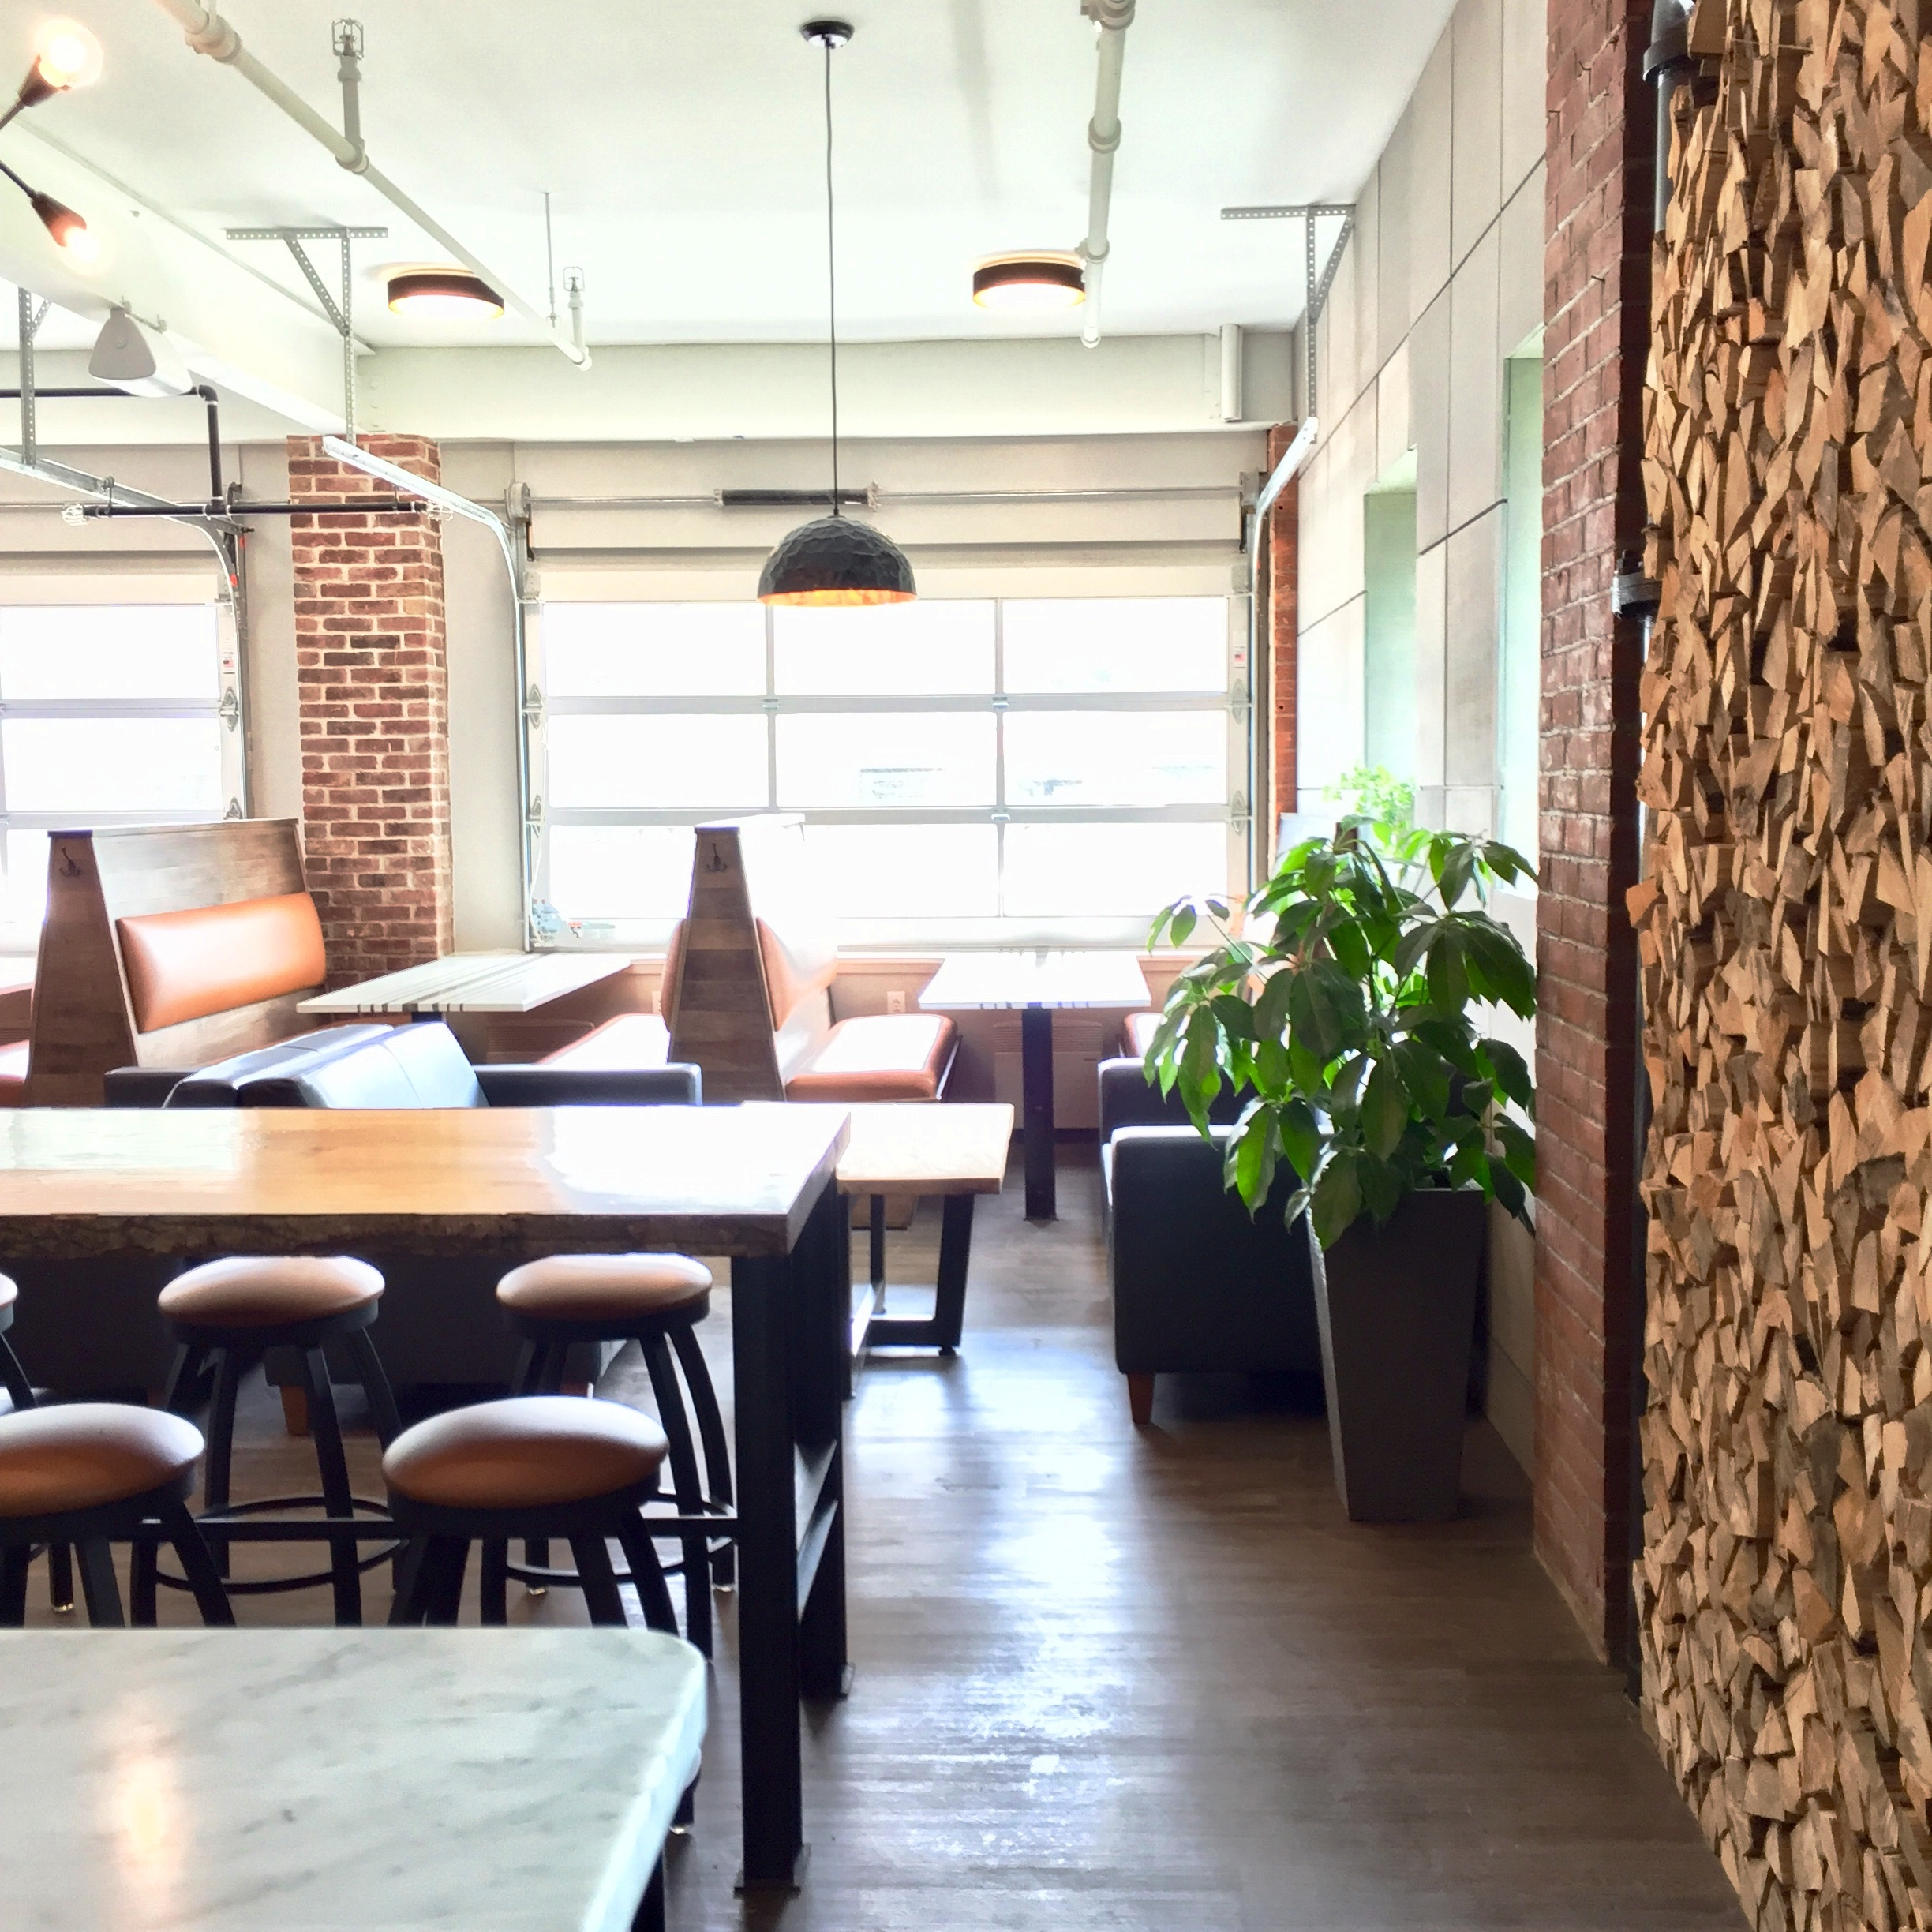 Warm local woods, metal, custom seating, marble counters, paneled walls, rustic lighting and lots of greenery…Pizza 44, Pine Street, Burlington, Vermont.